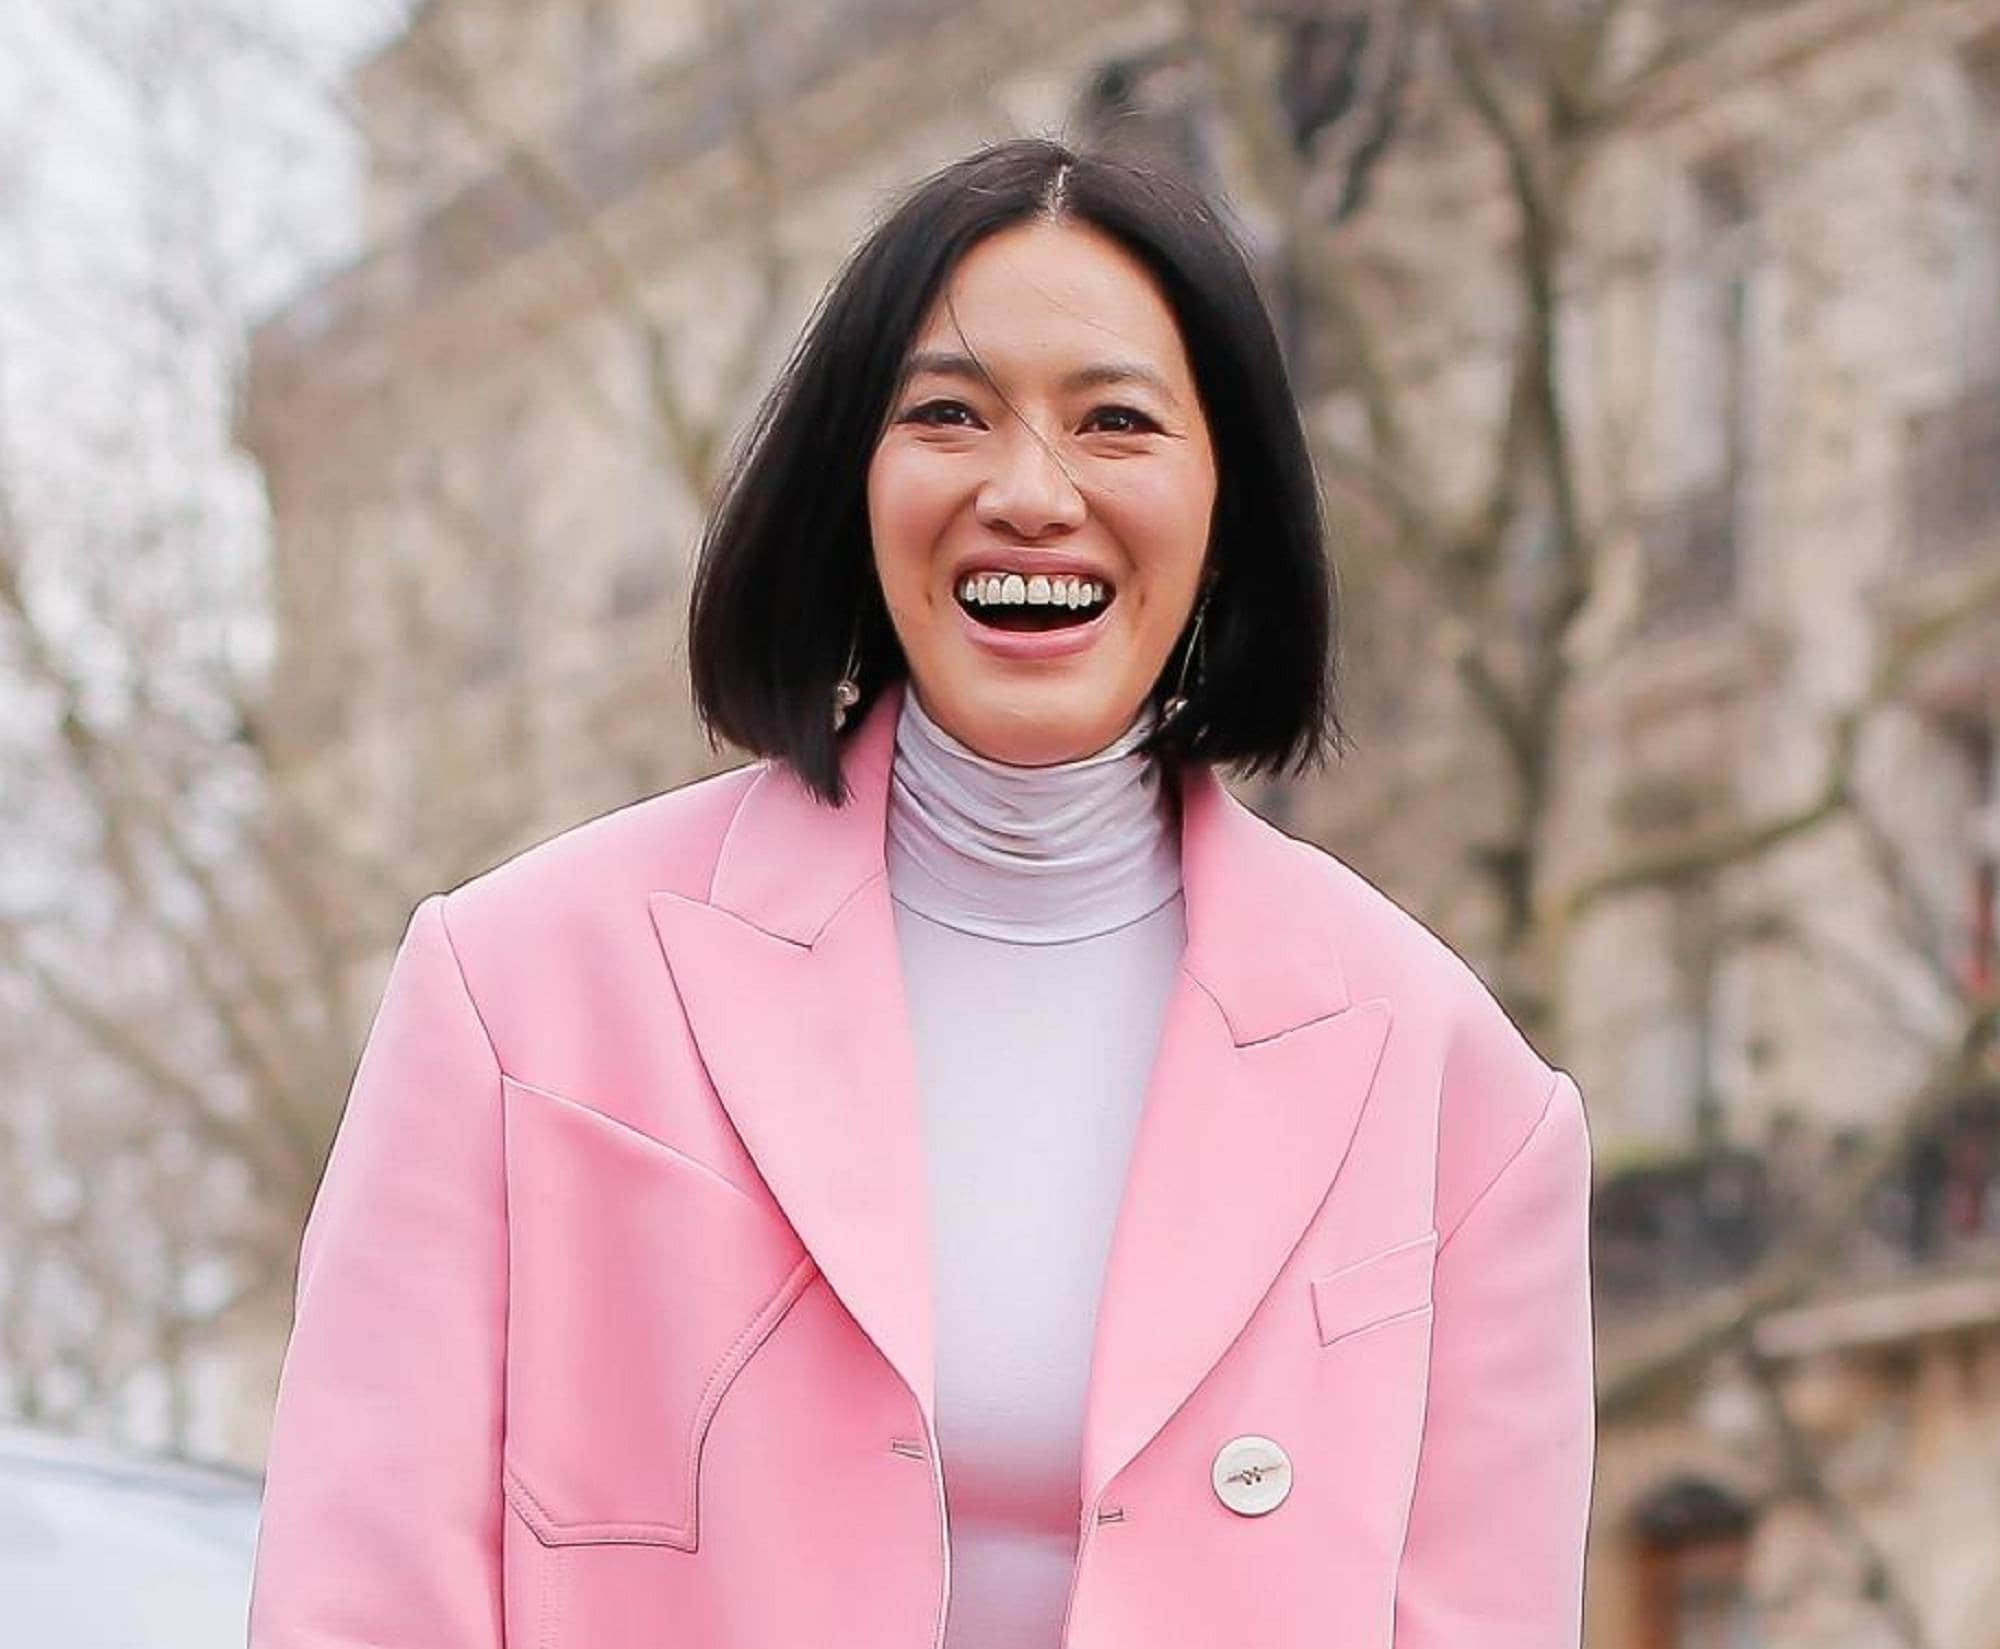 Best haircuts for different face shapes: Closeup shot of a woman with straight black lob wearing a pink blazer outdoors